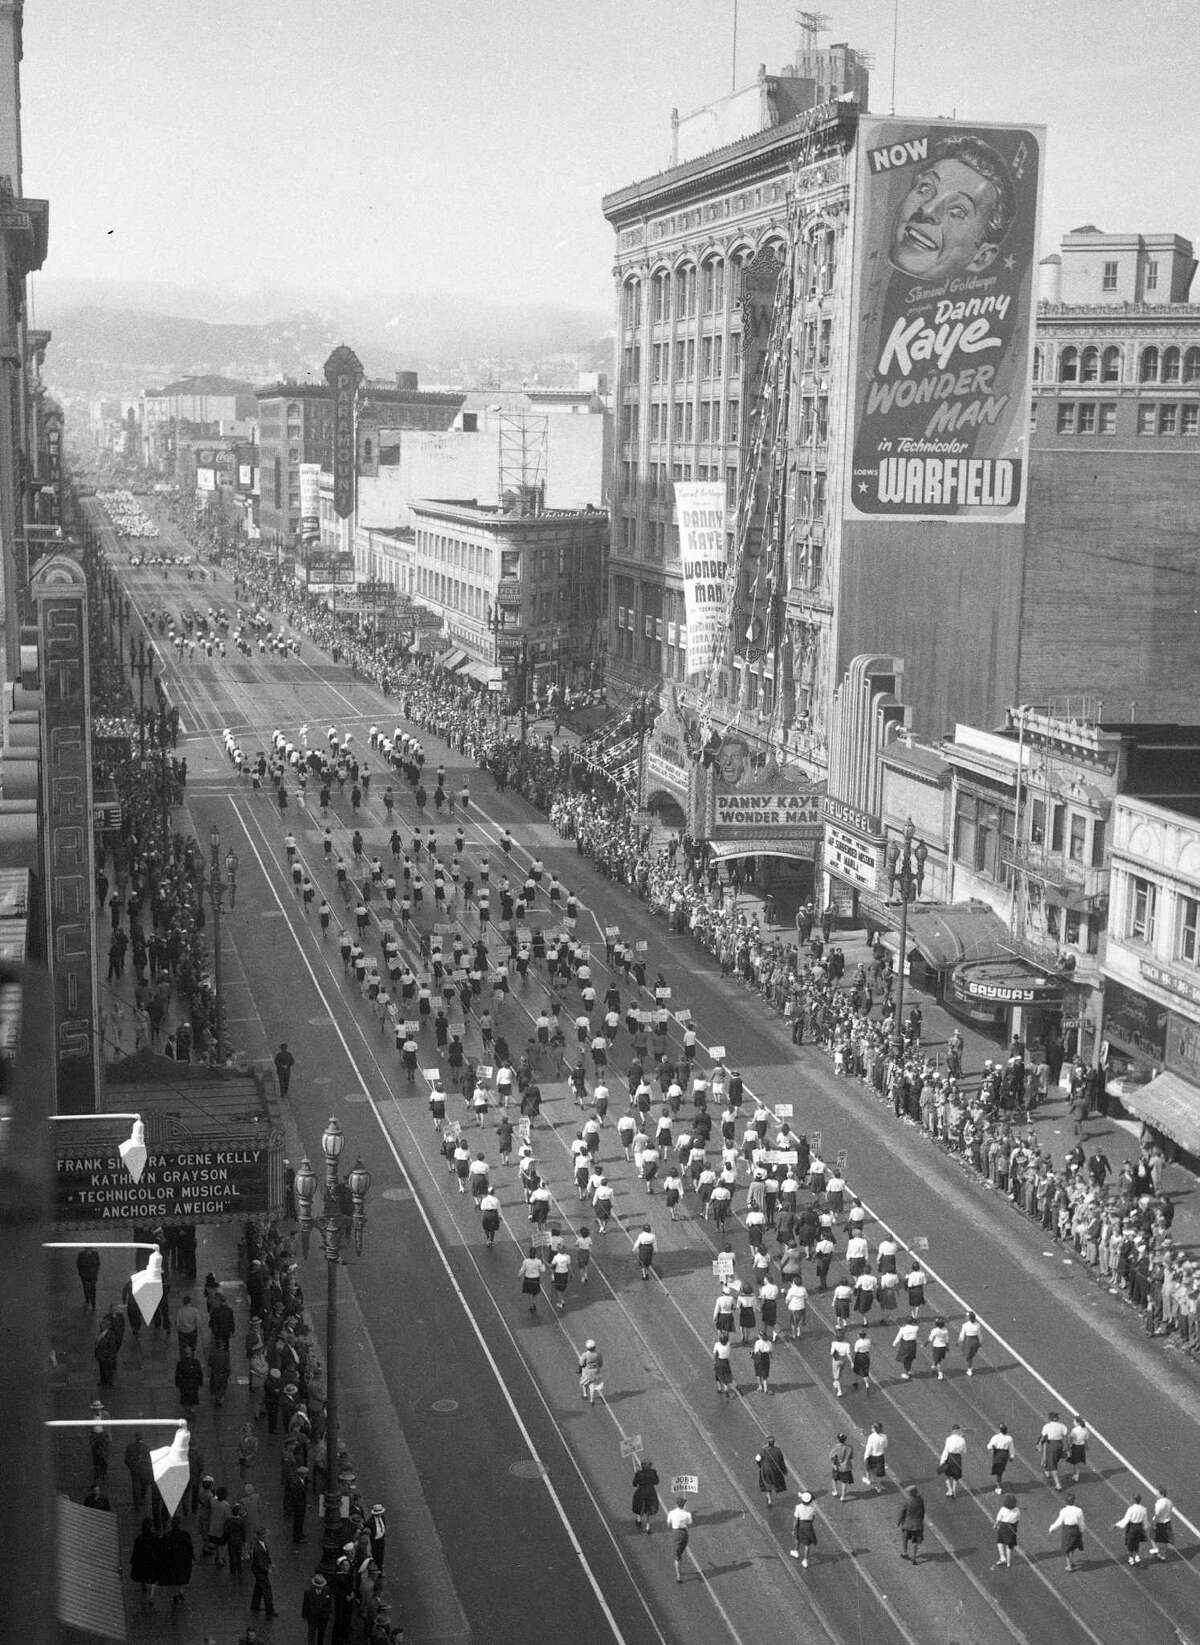 Parade goes by the the Warfield Theater, on Market Street in 1948.